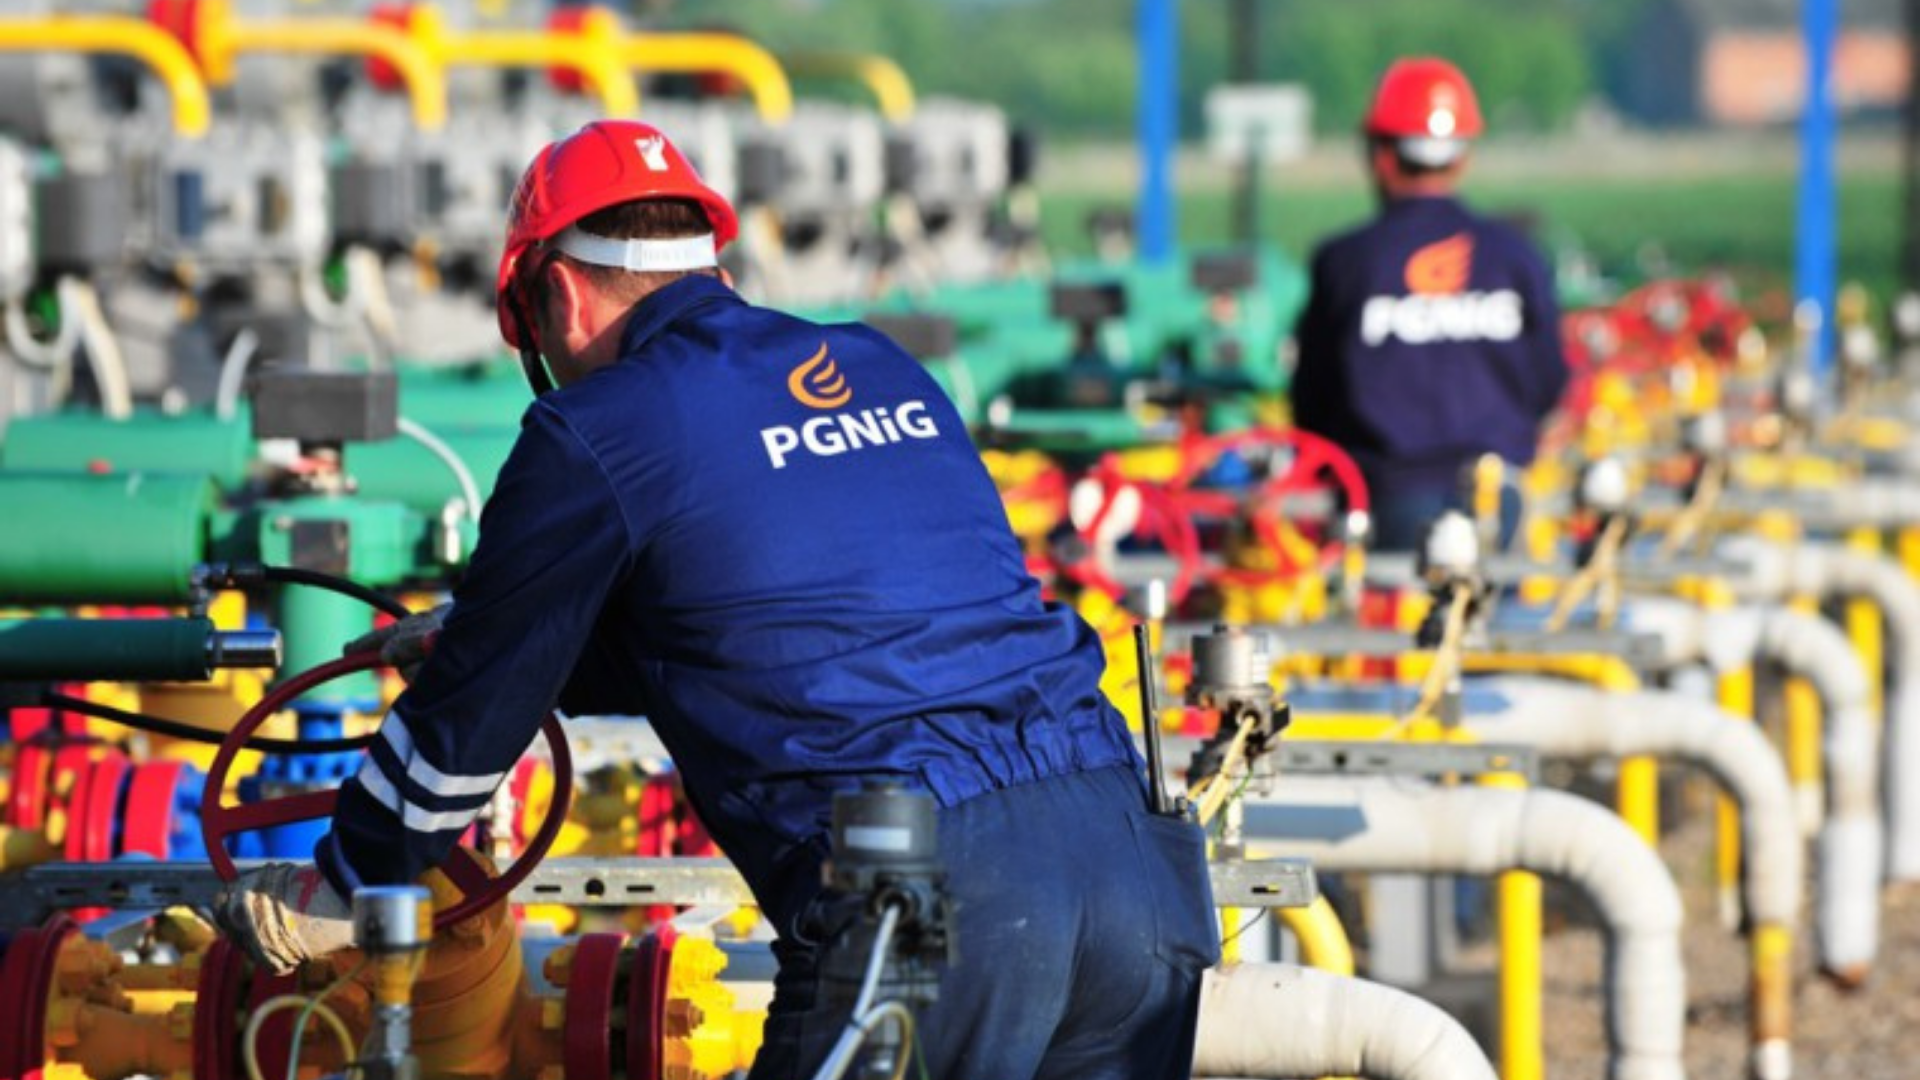 PGNiG and Naftogaz: a step towards joint gas production in Ukraine